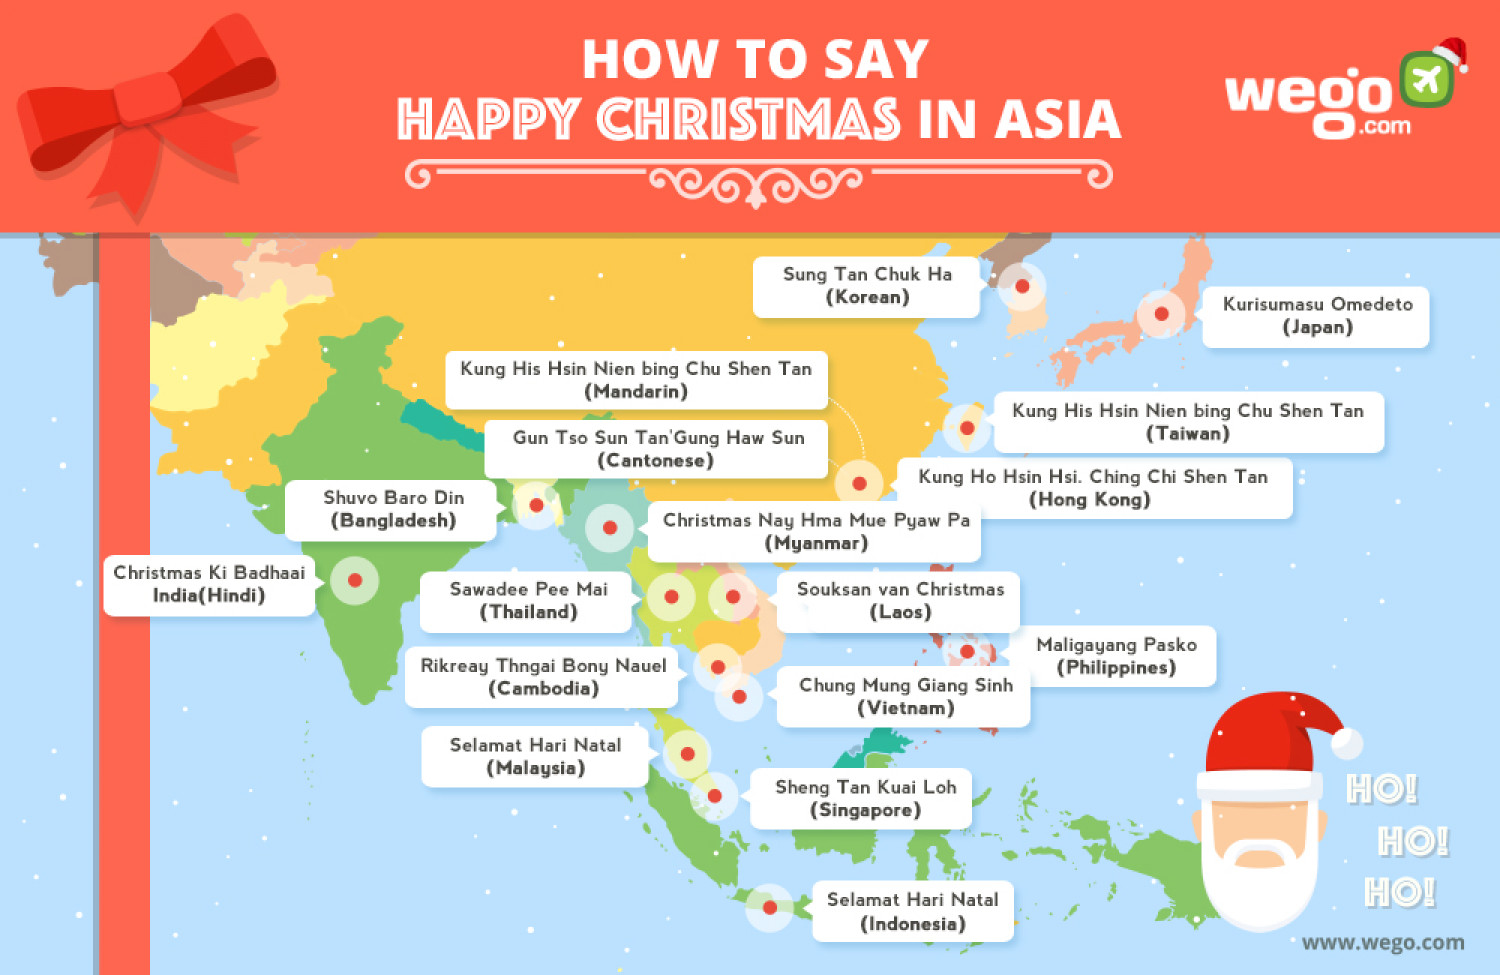 how to say happy christmas in asia infographic